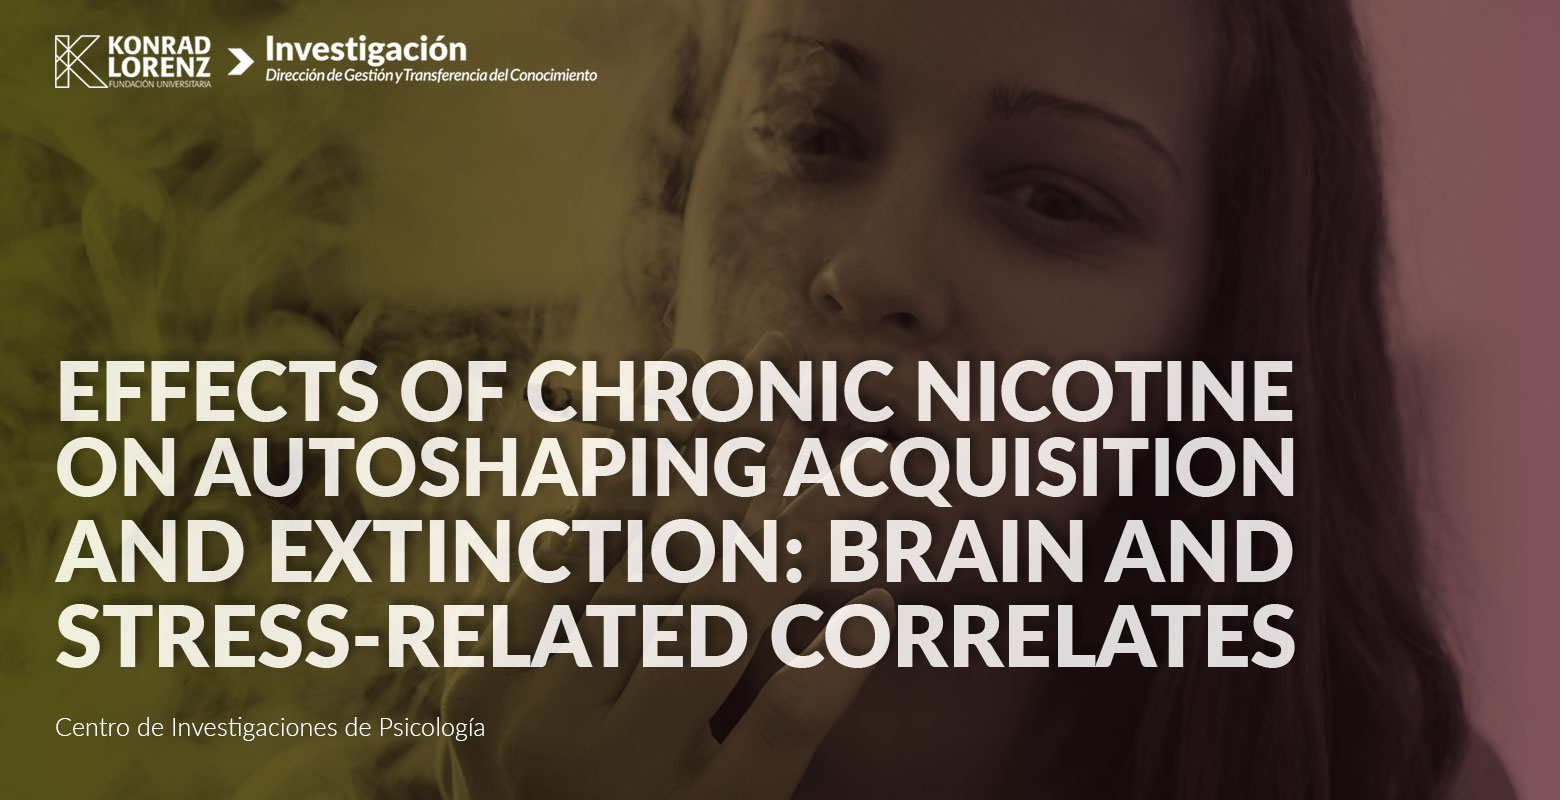 Effects of chronic nicotine on autoshaping acquisition and extinction: Brain and stress-related correlates